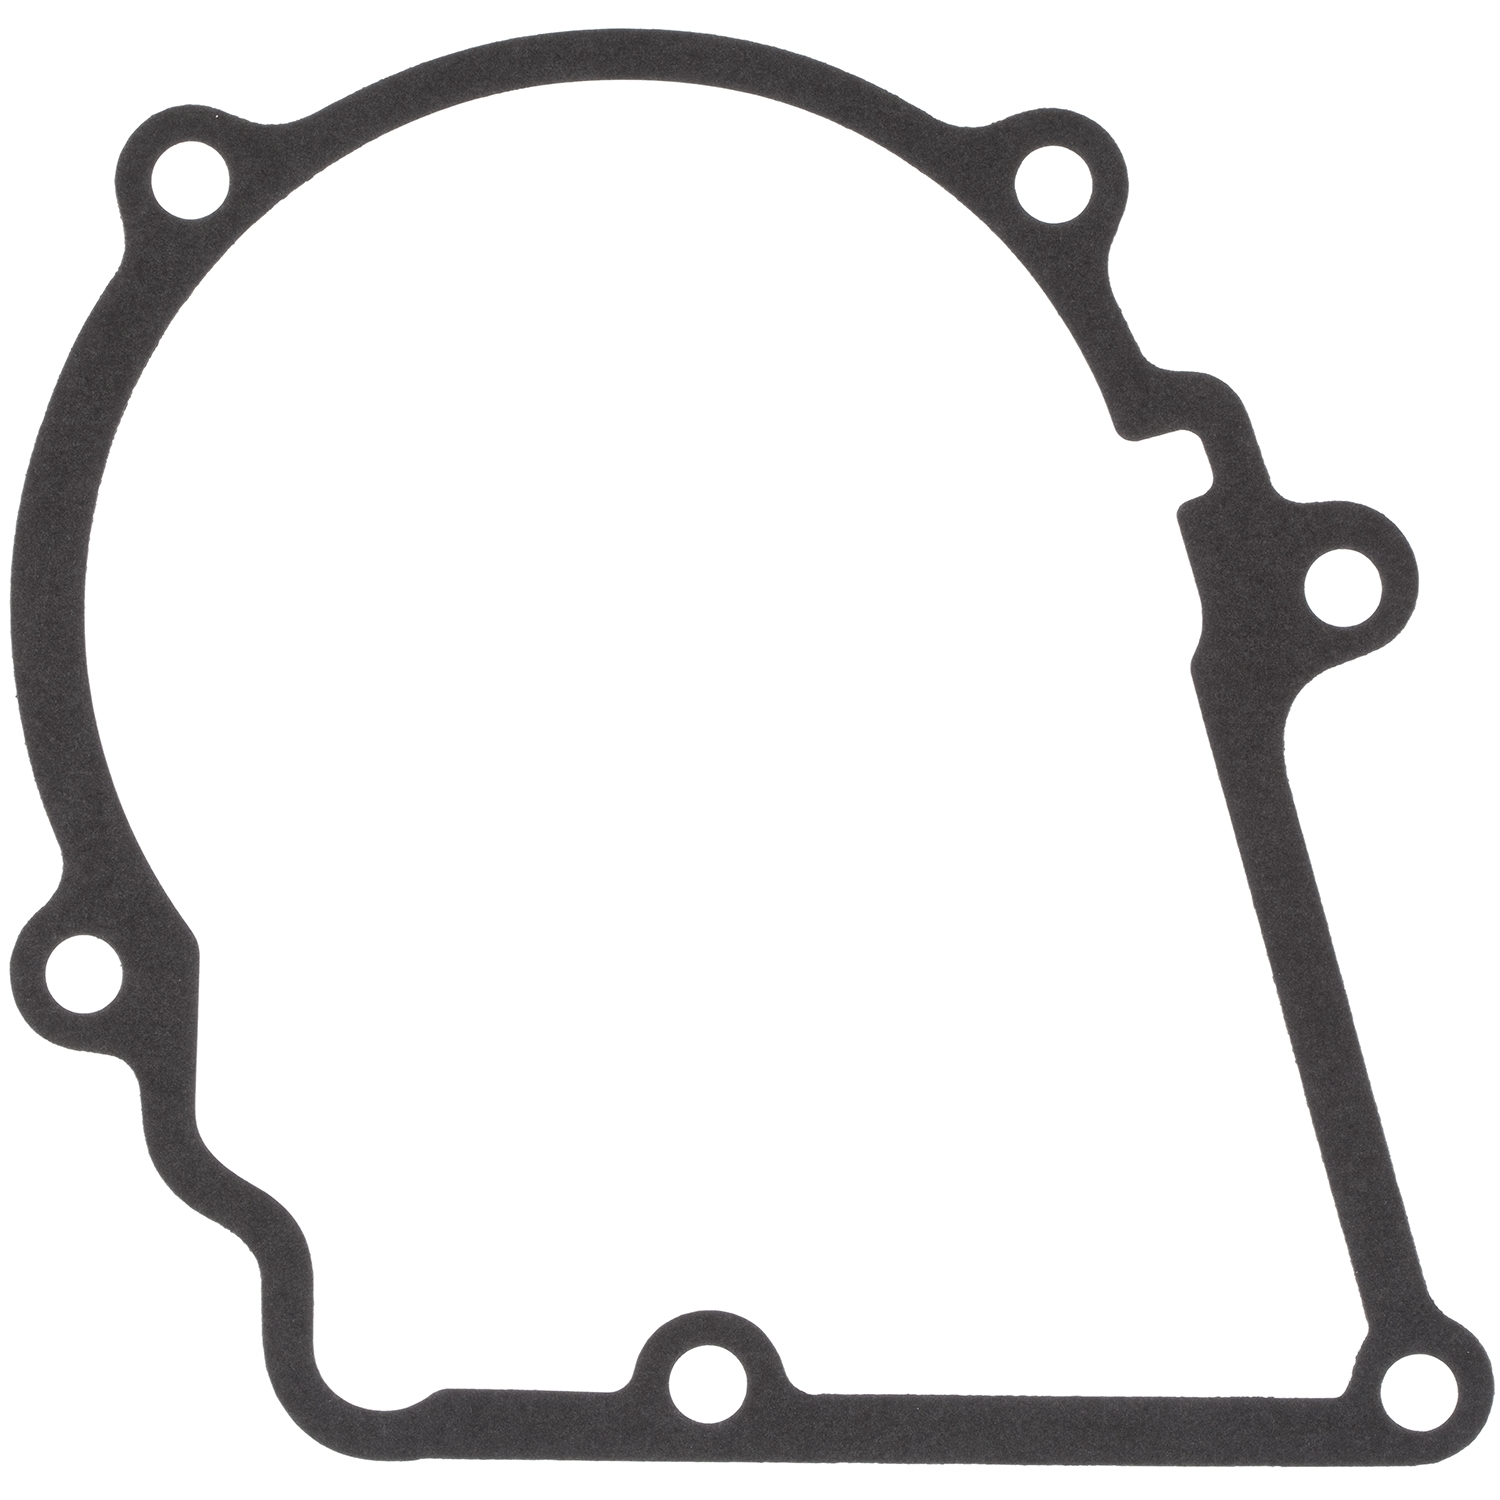 Automatic Transmission Extension Housing Gasket